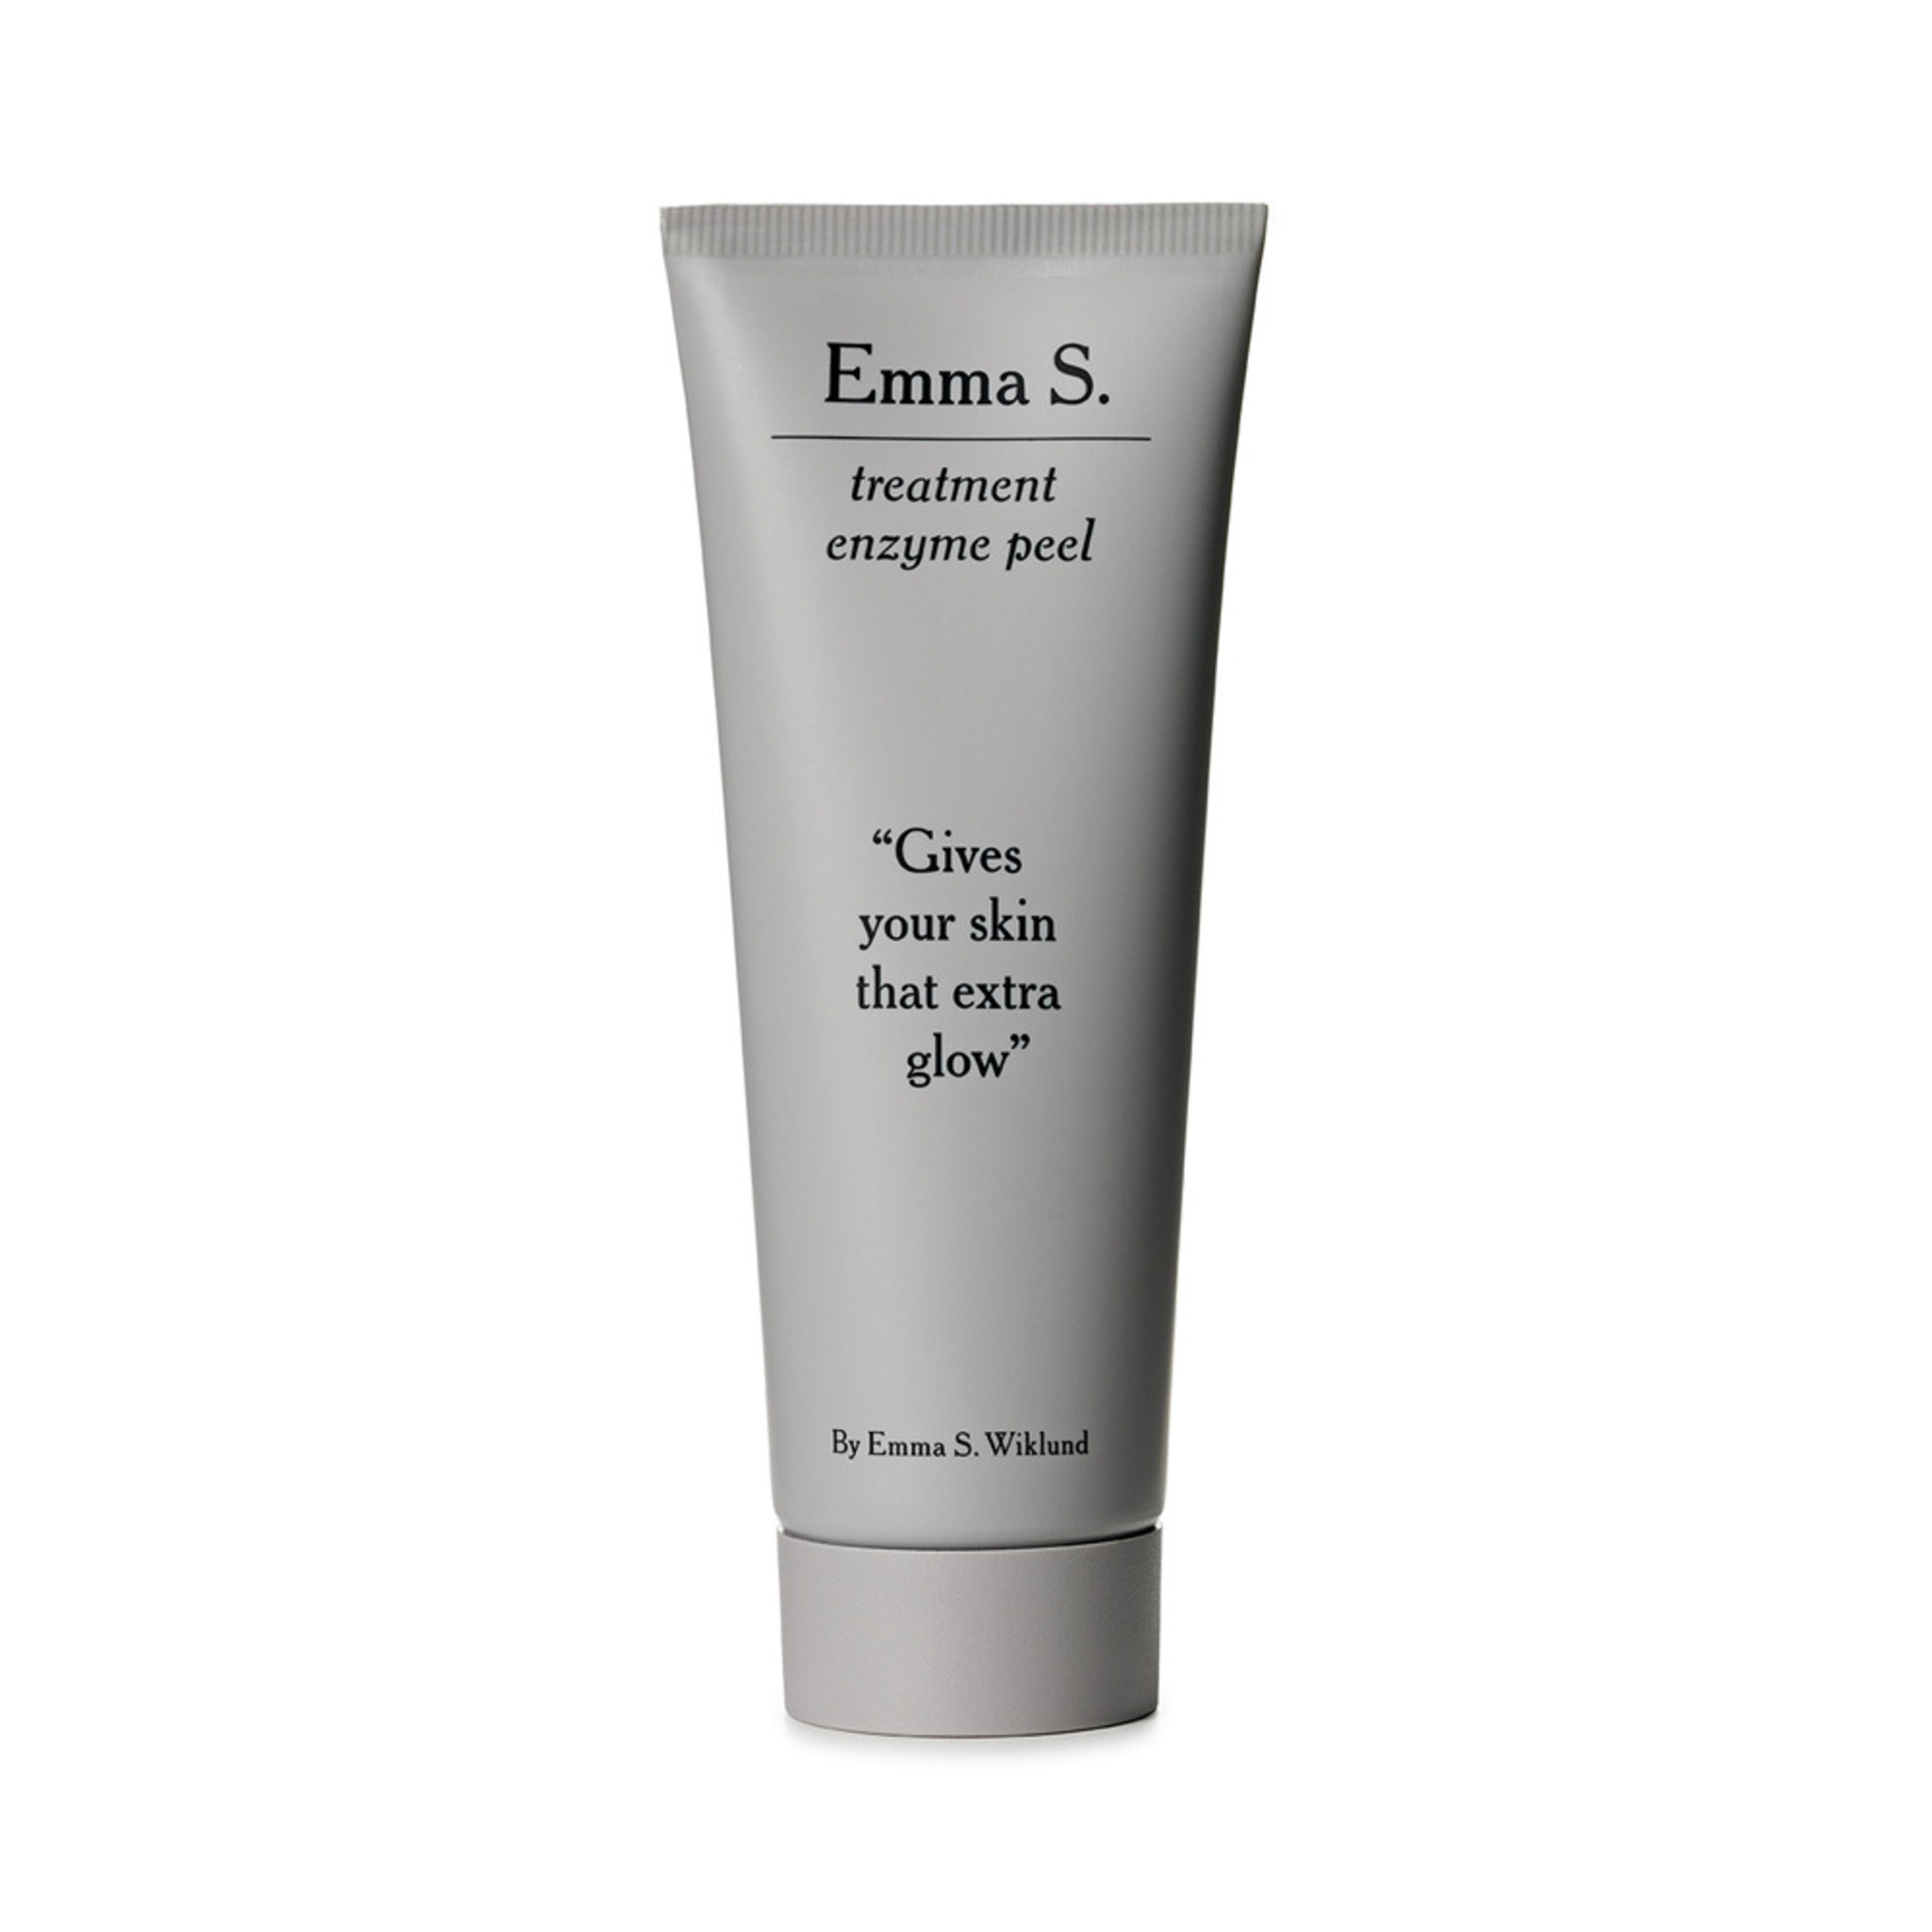 emma s review